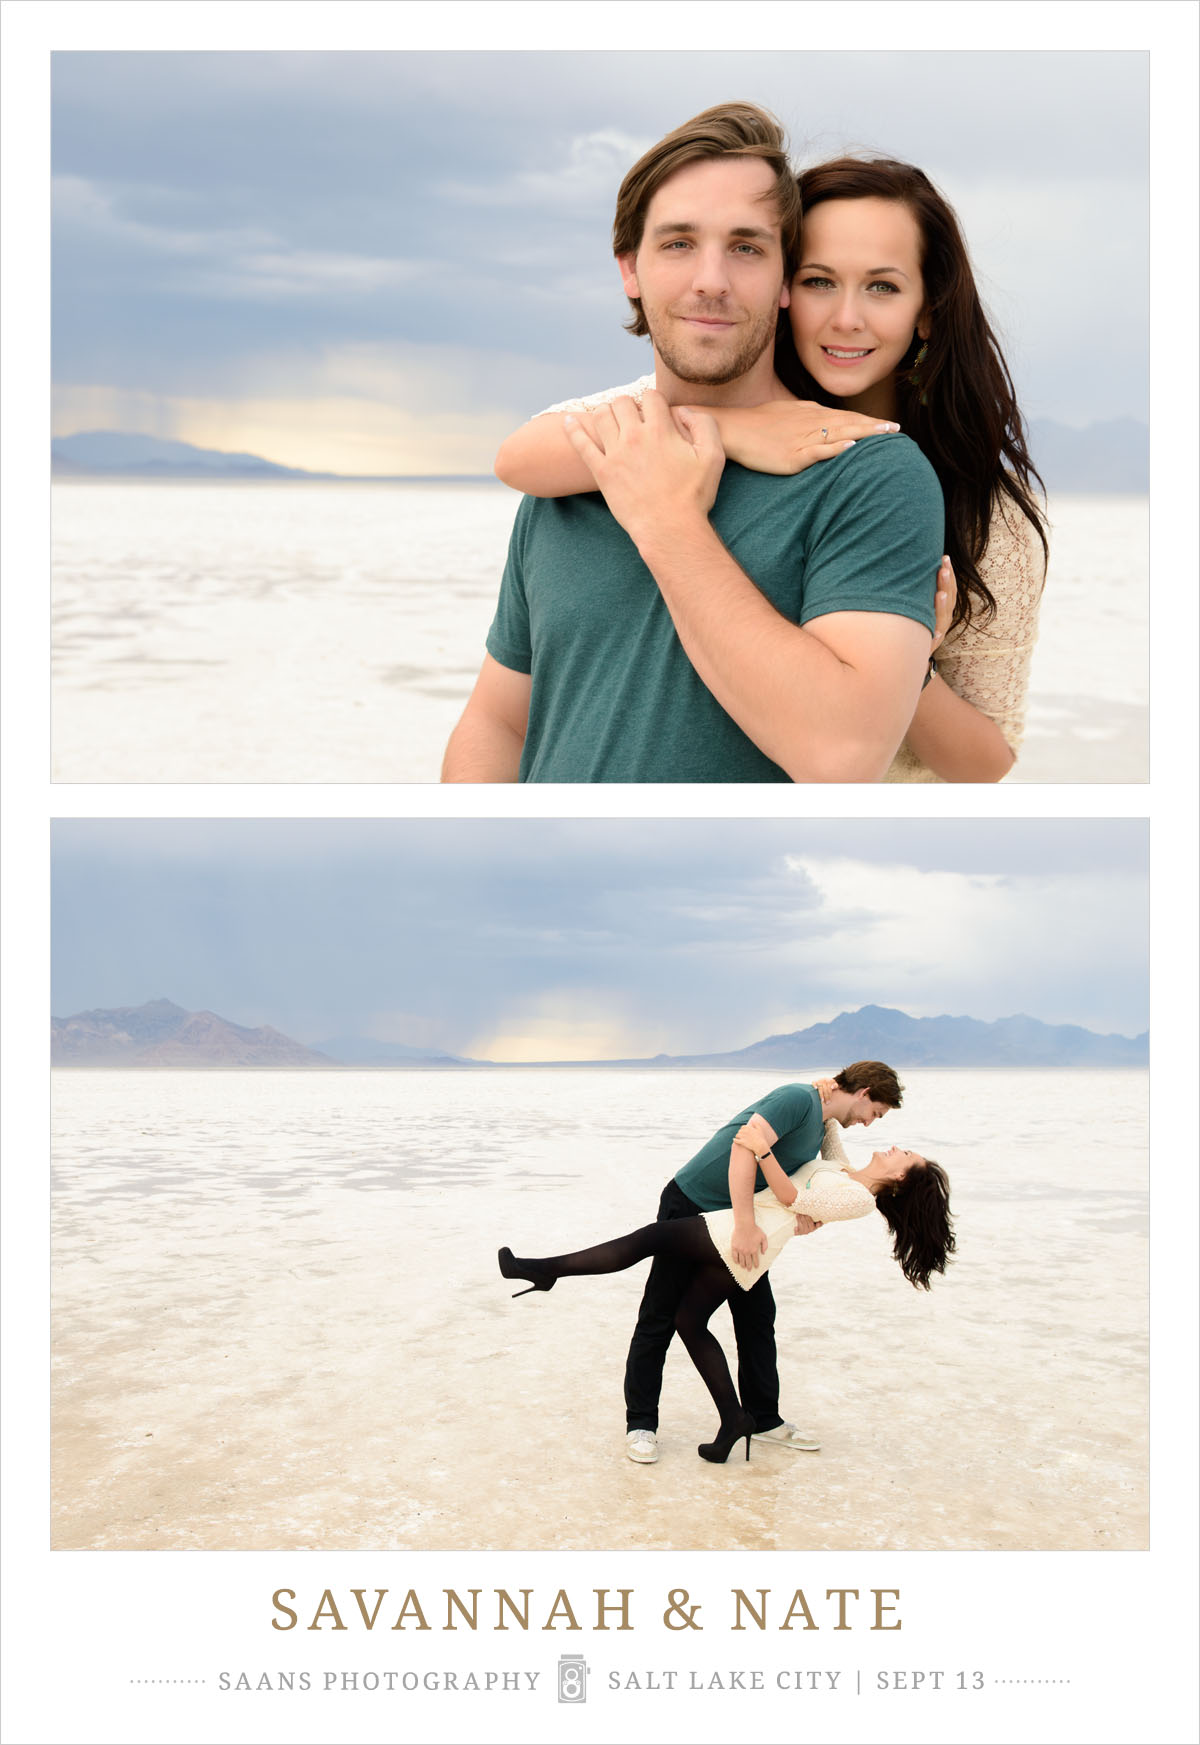 Couples Photography Session taken at the Salt Flats in Utah by Saans Photography